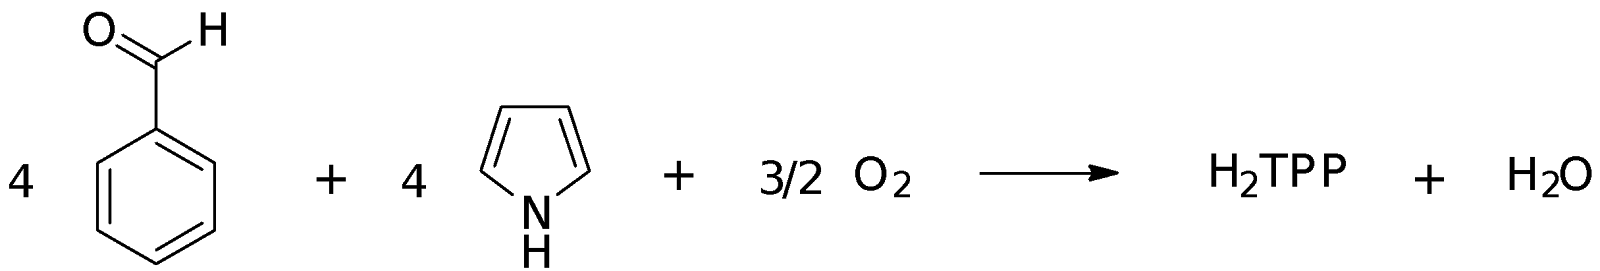 formation of benzaldehyde